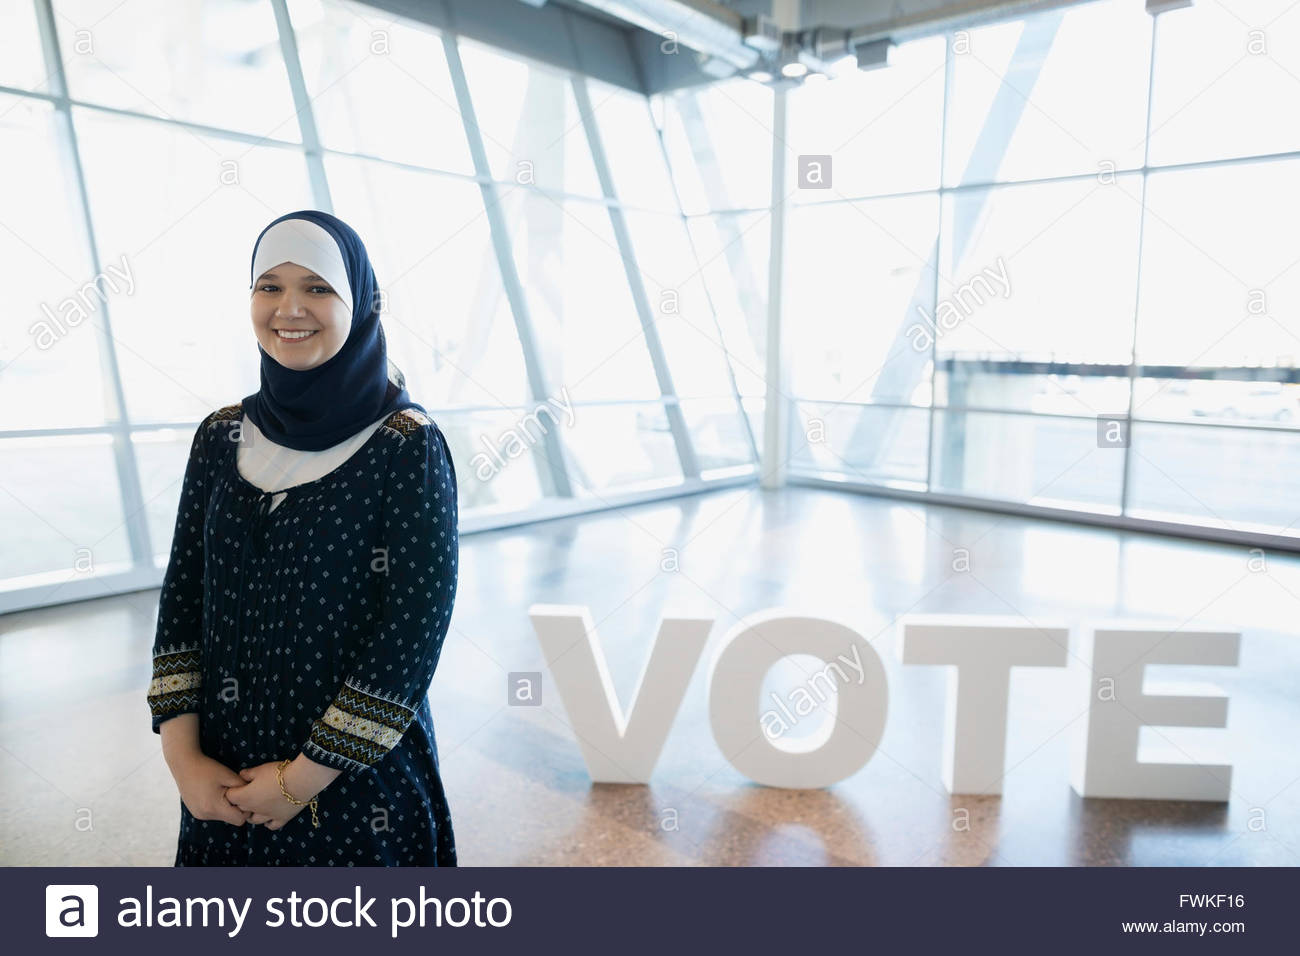 Portrait smiling young woman hijab near Vote text - Stock Image